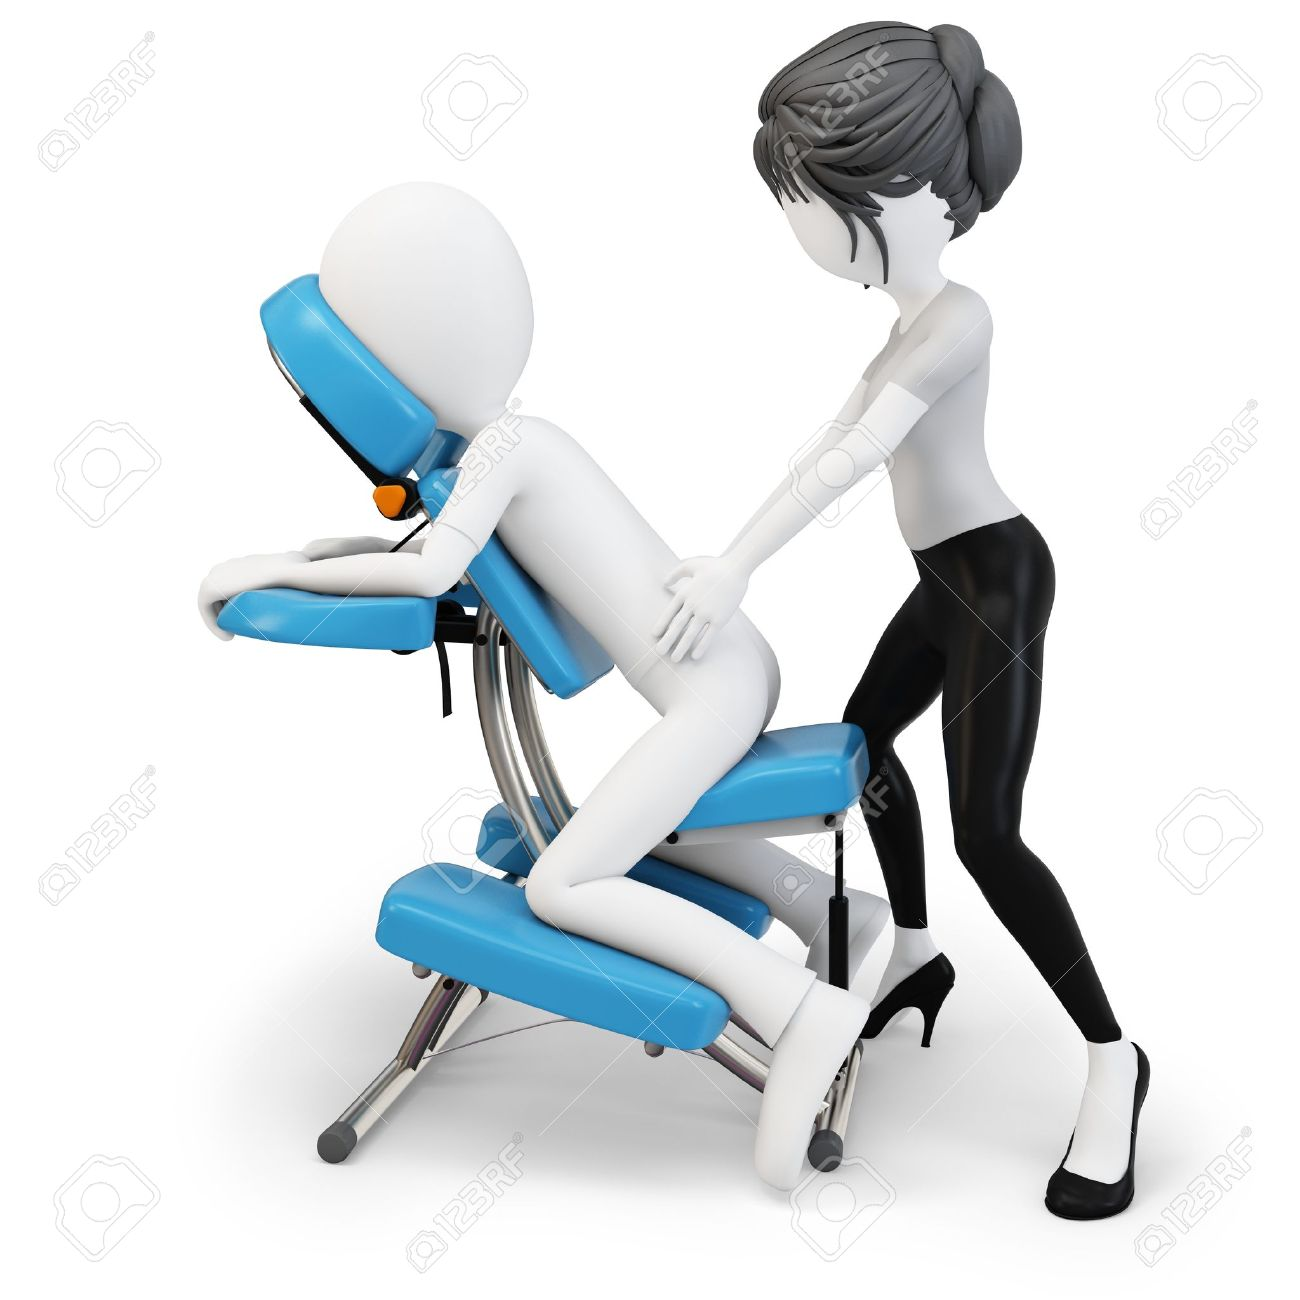 Massage Therapist Chair Free Massage Clipart Images Free Download Best Free Massage